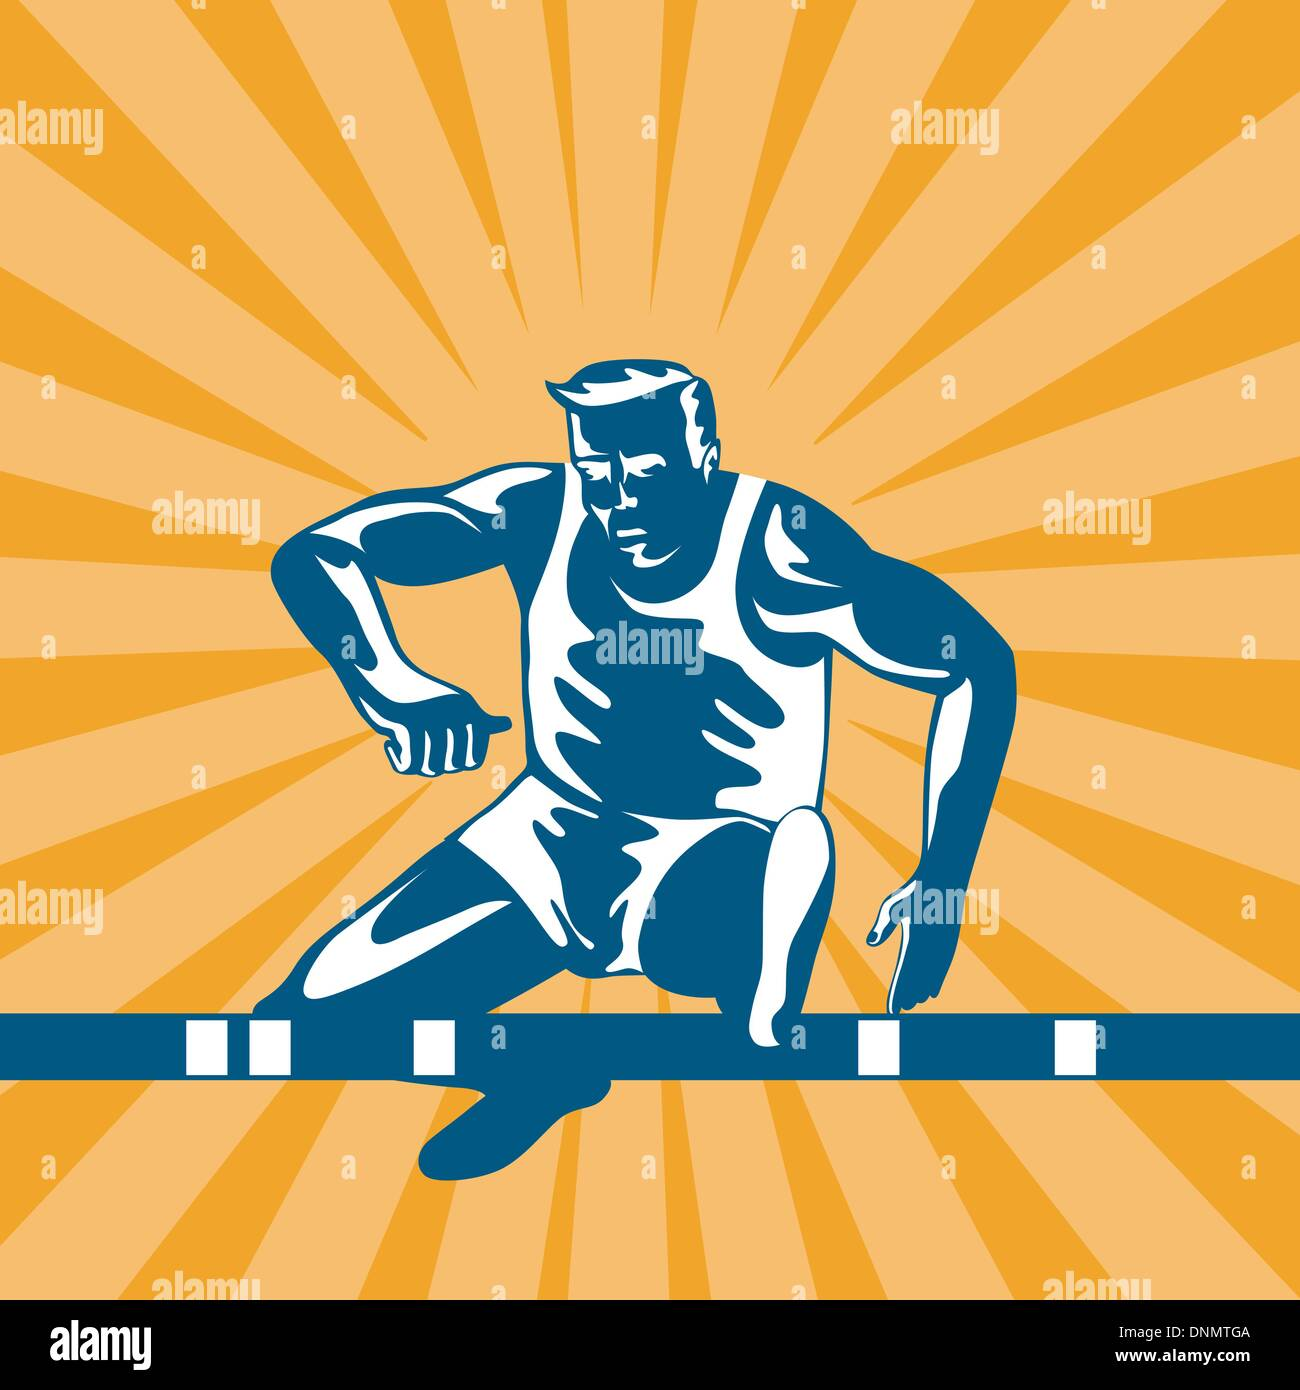 Illustration of a track and field athlete jumping hurdles done in retro style. Stock Vector